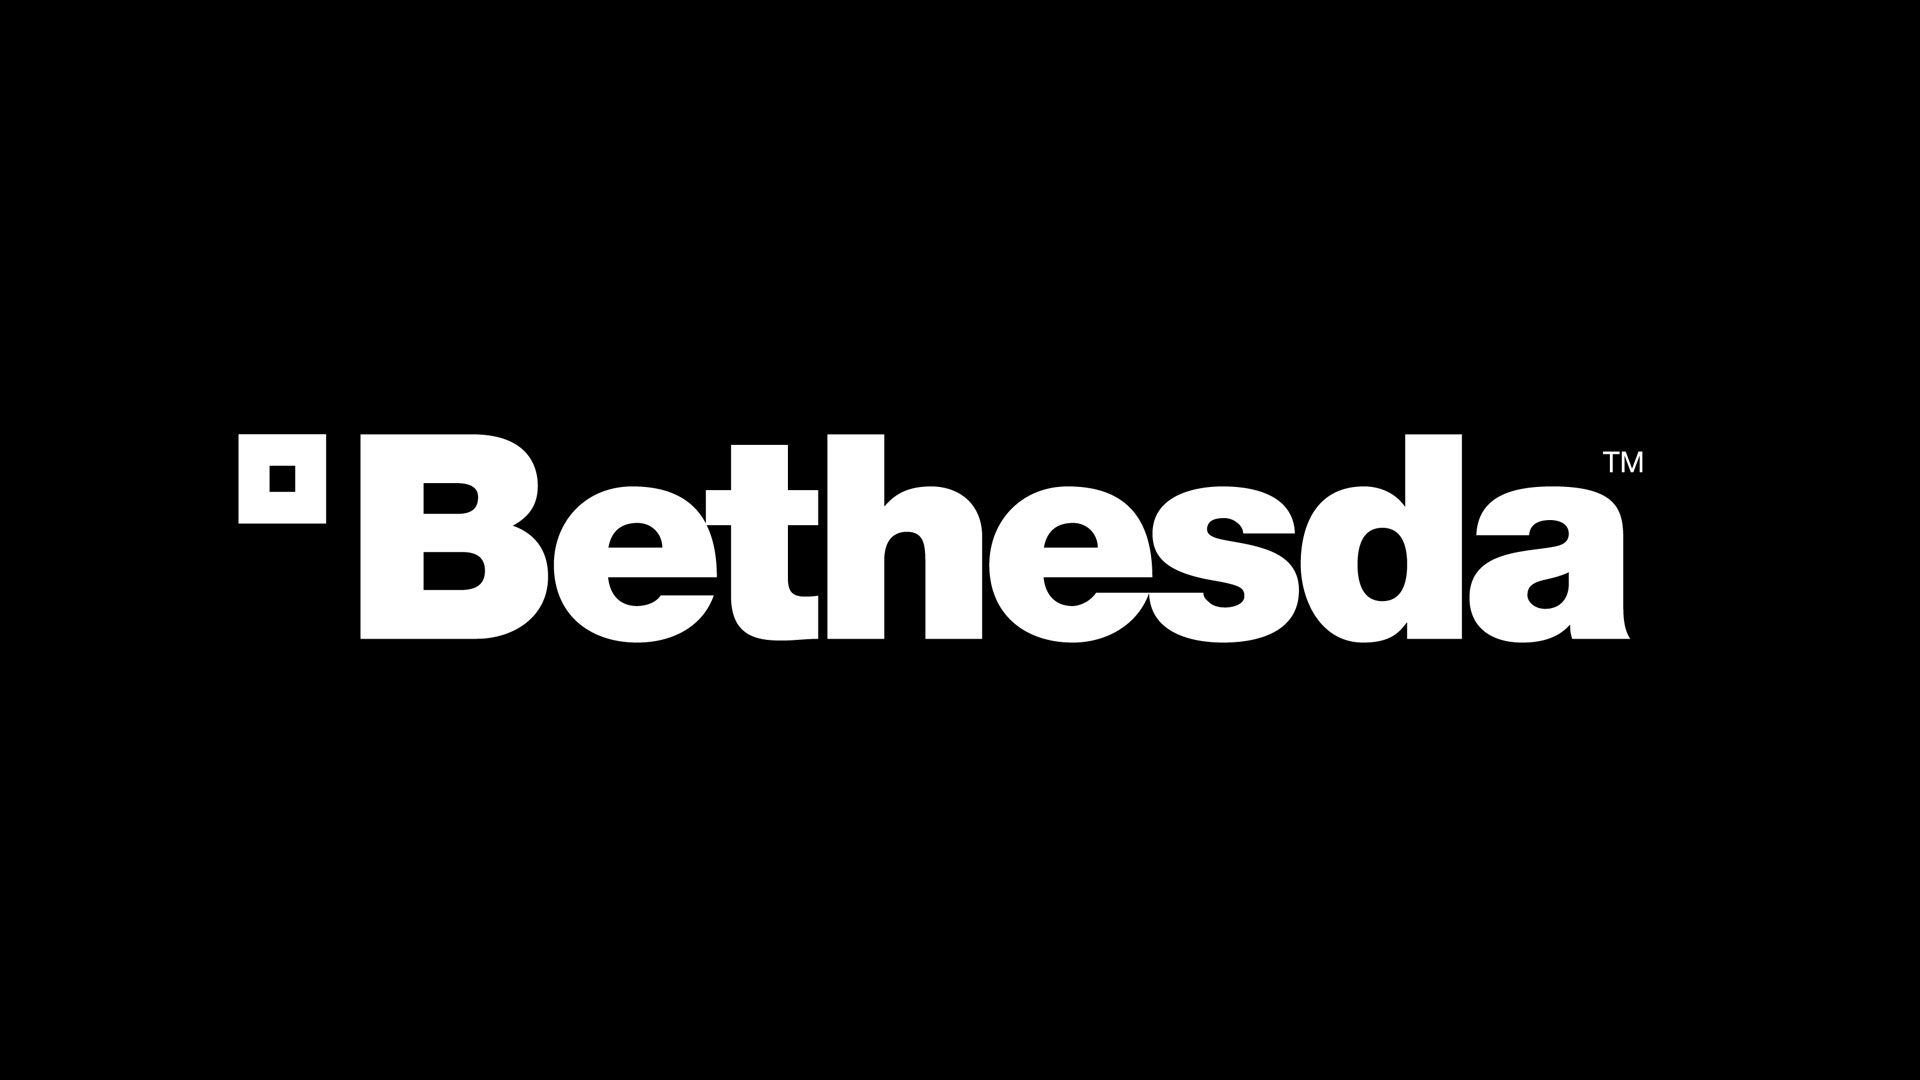 Xbox Executive Says Bethesda's Games Might Not Be Exclusives, But Will Be Best On Microsoft's Platform